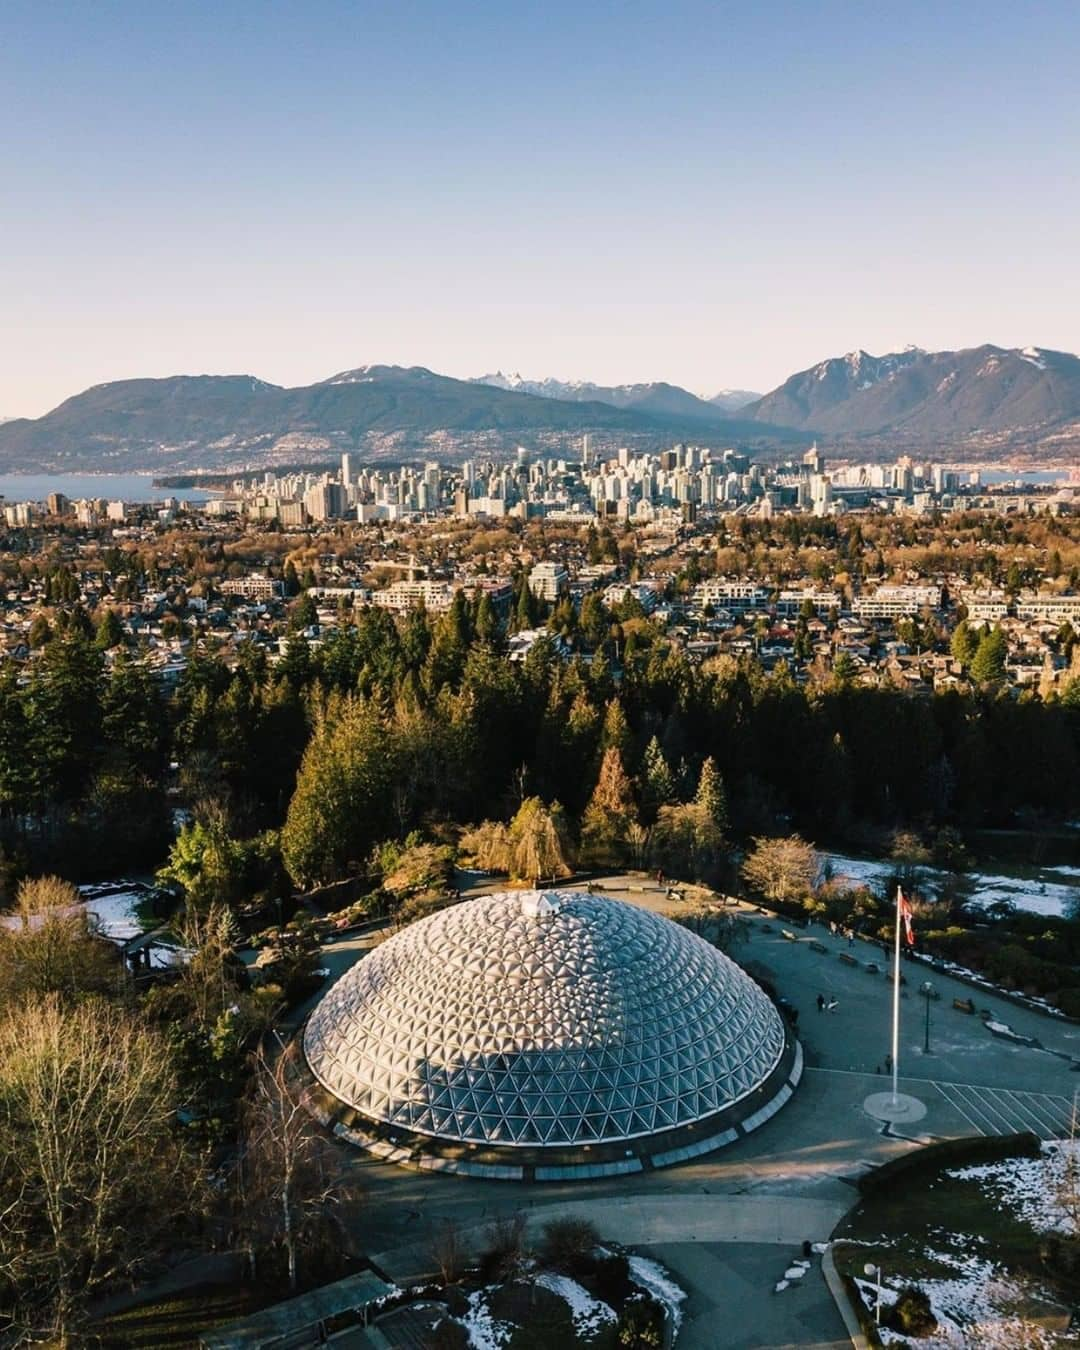 Places to visit around vancouver during spring Queen elizabeth